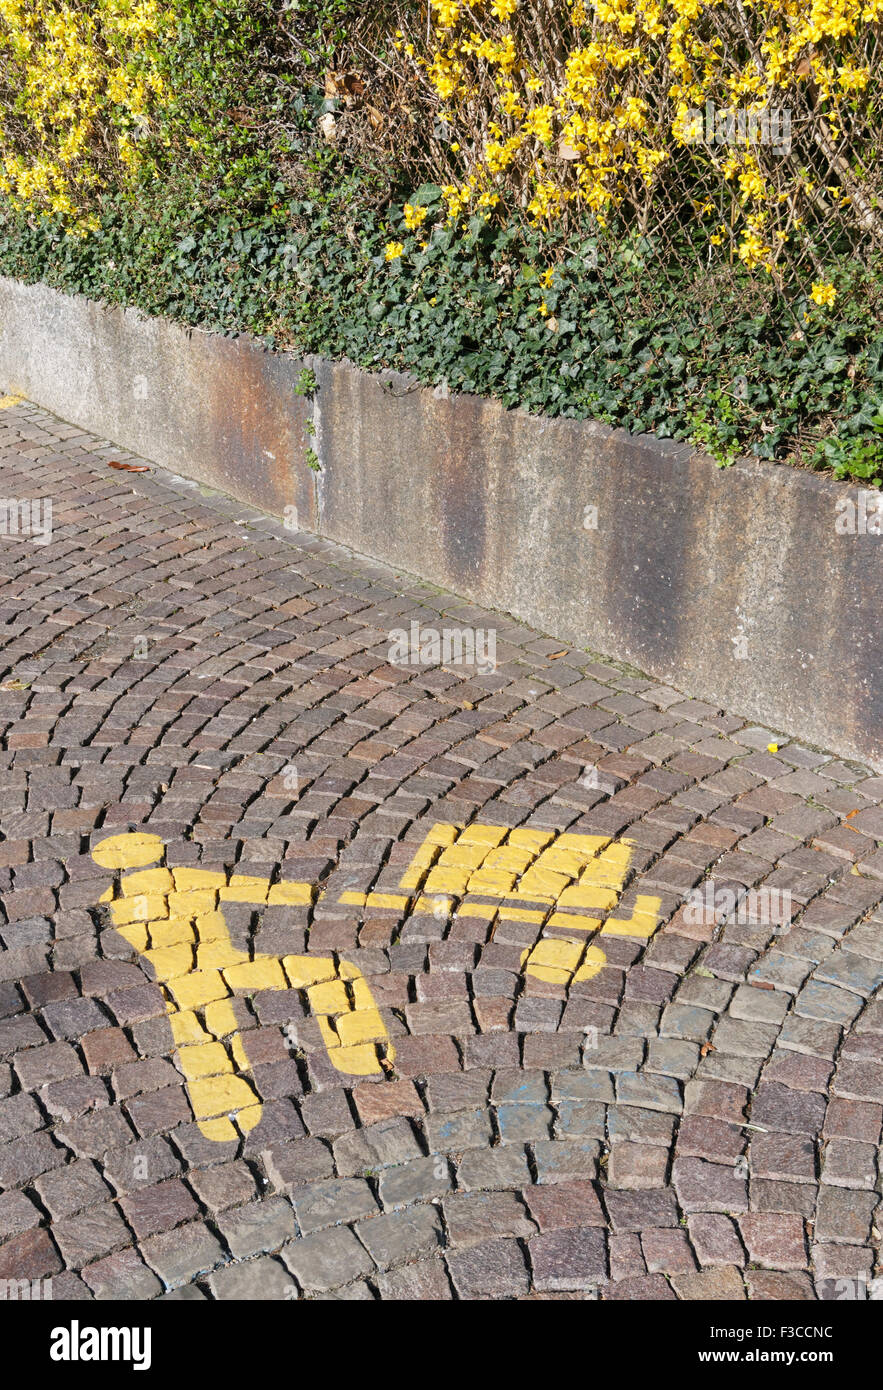 symbol signaling a loading and unloading parking area sign on the pavement of a street in Italy - Stock Image